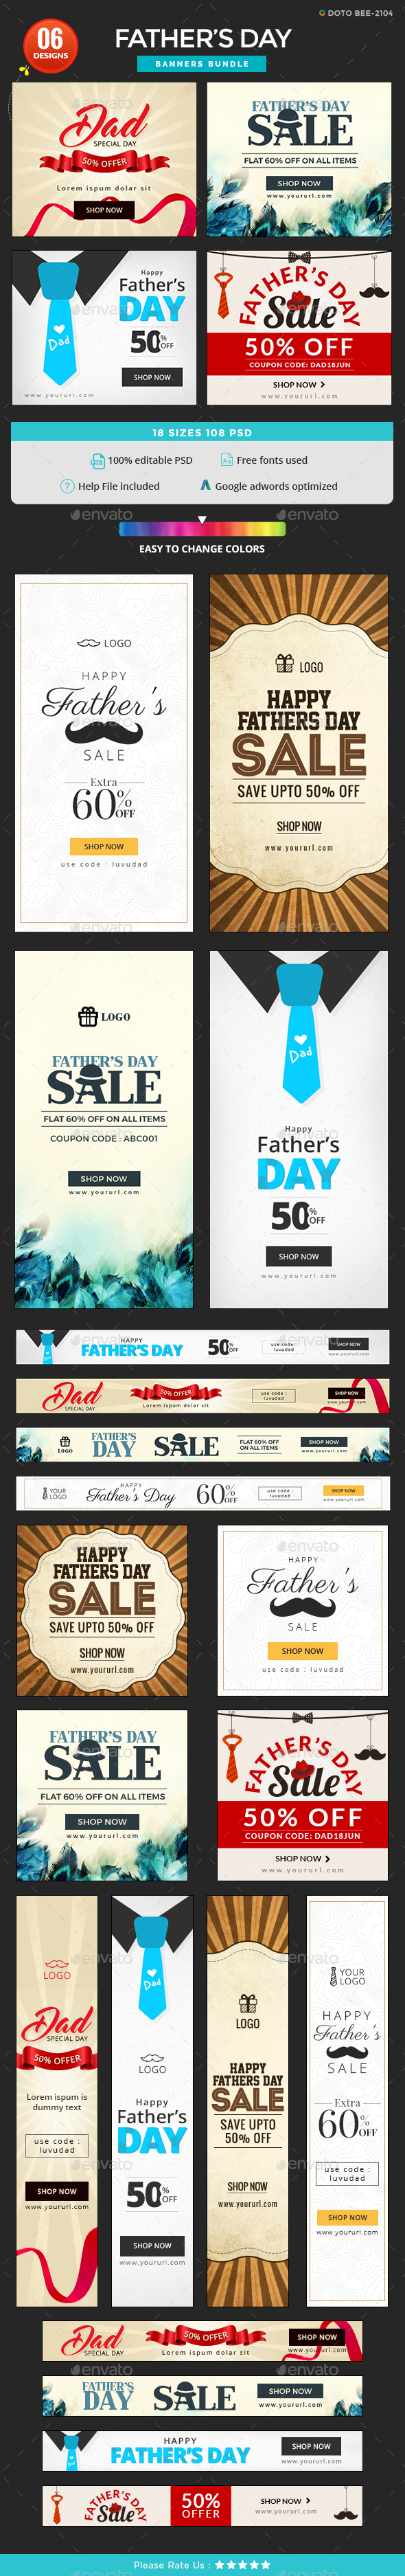 Fathers Day Banners Bundle - 6 Sets - 108 Banners - Banners & Ads Web Elements